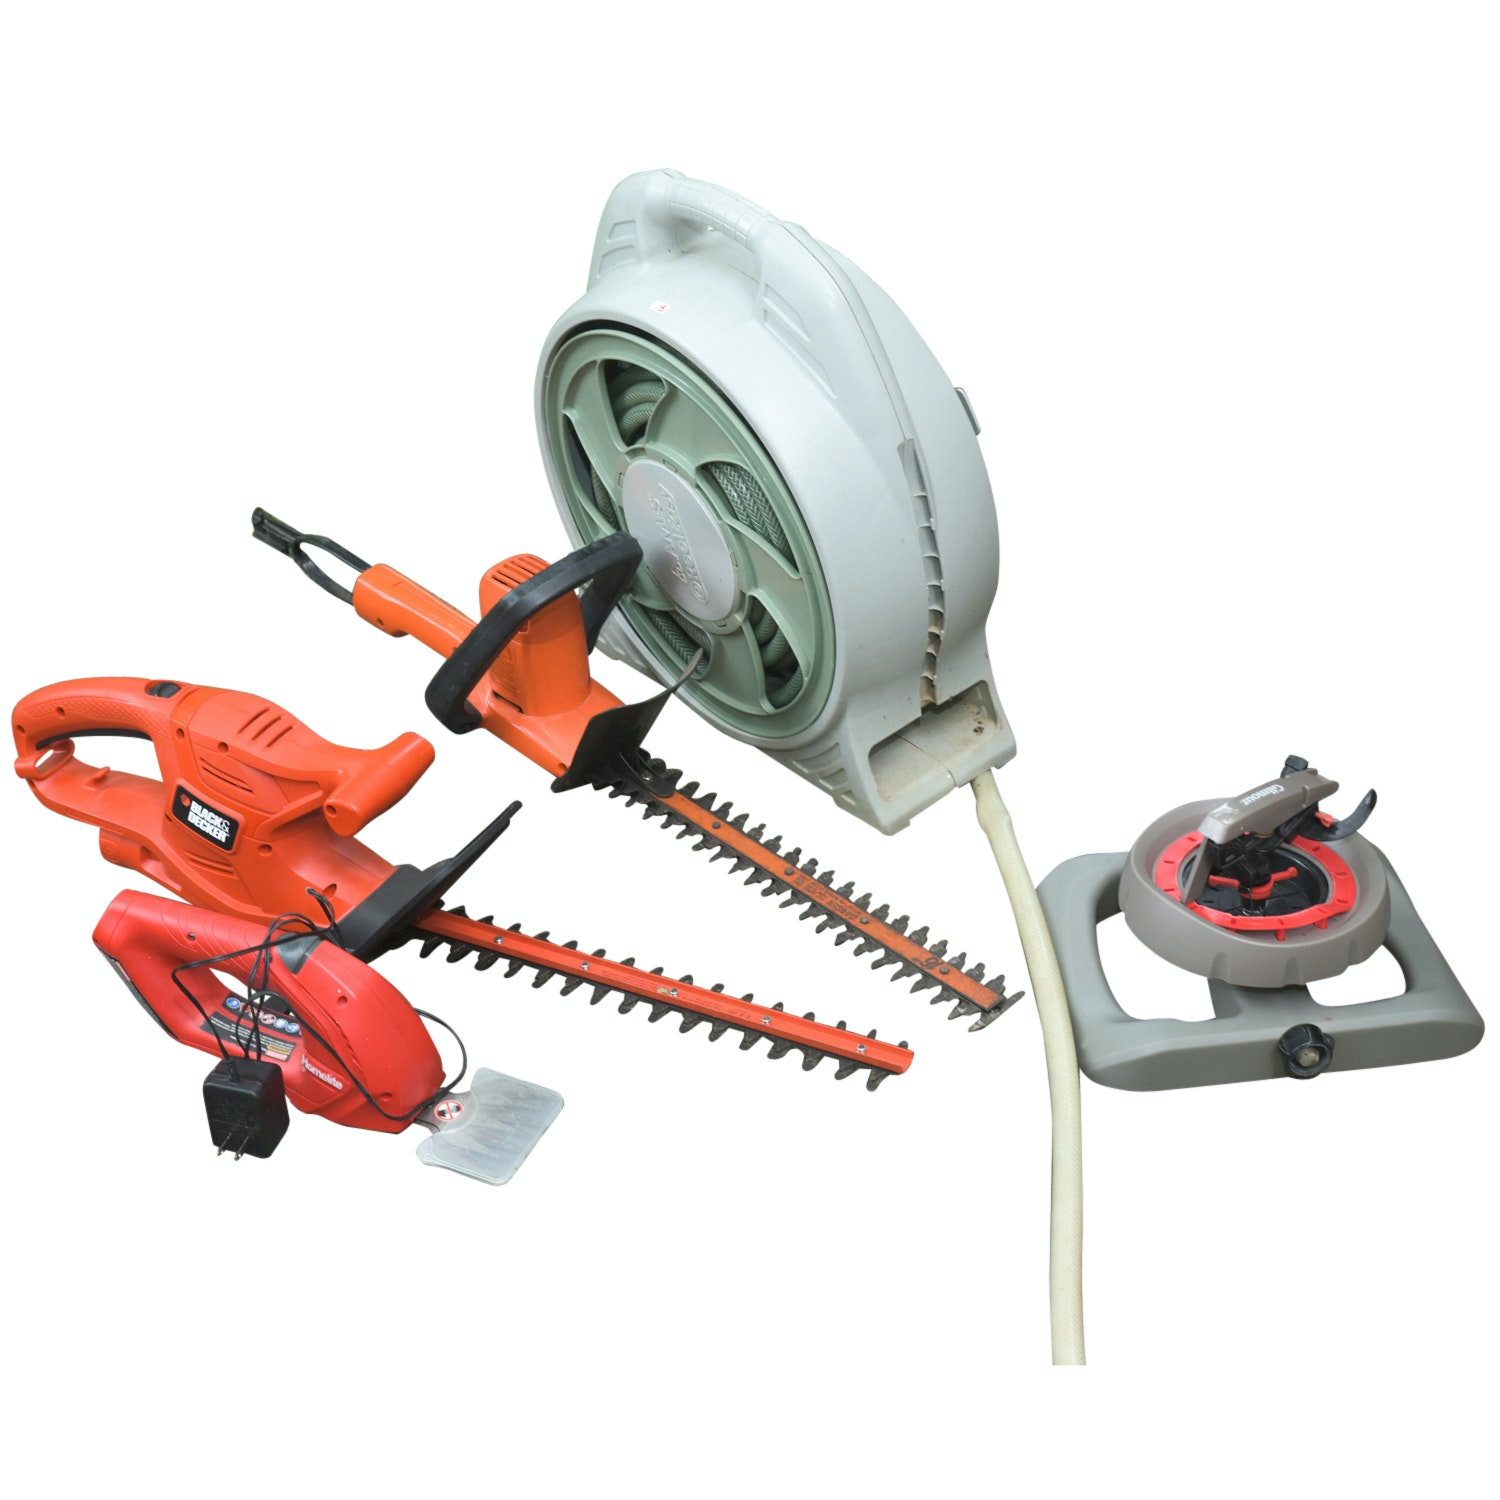 Black & Decker Hedge Trimmers, Homelite Cordless Shear, and Other Garden Tools